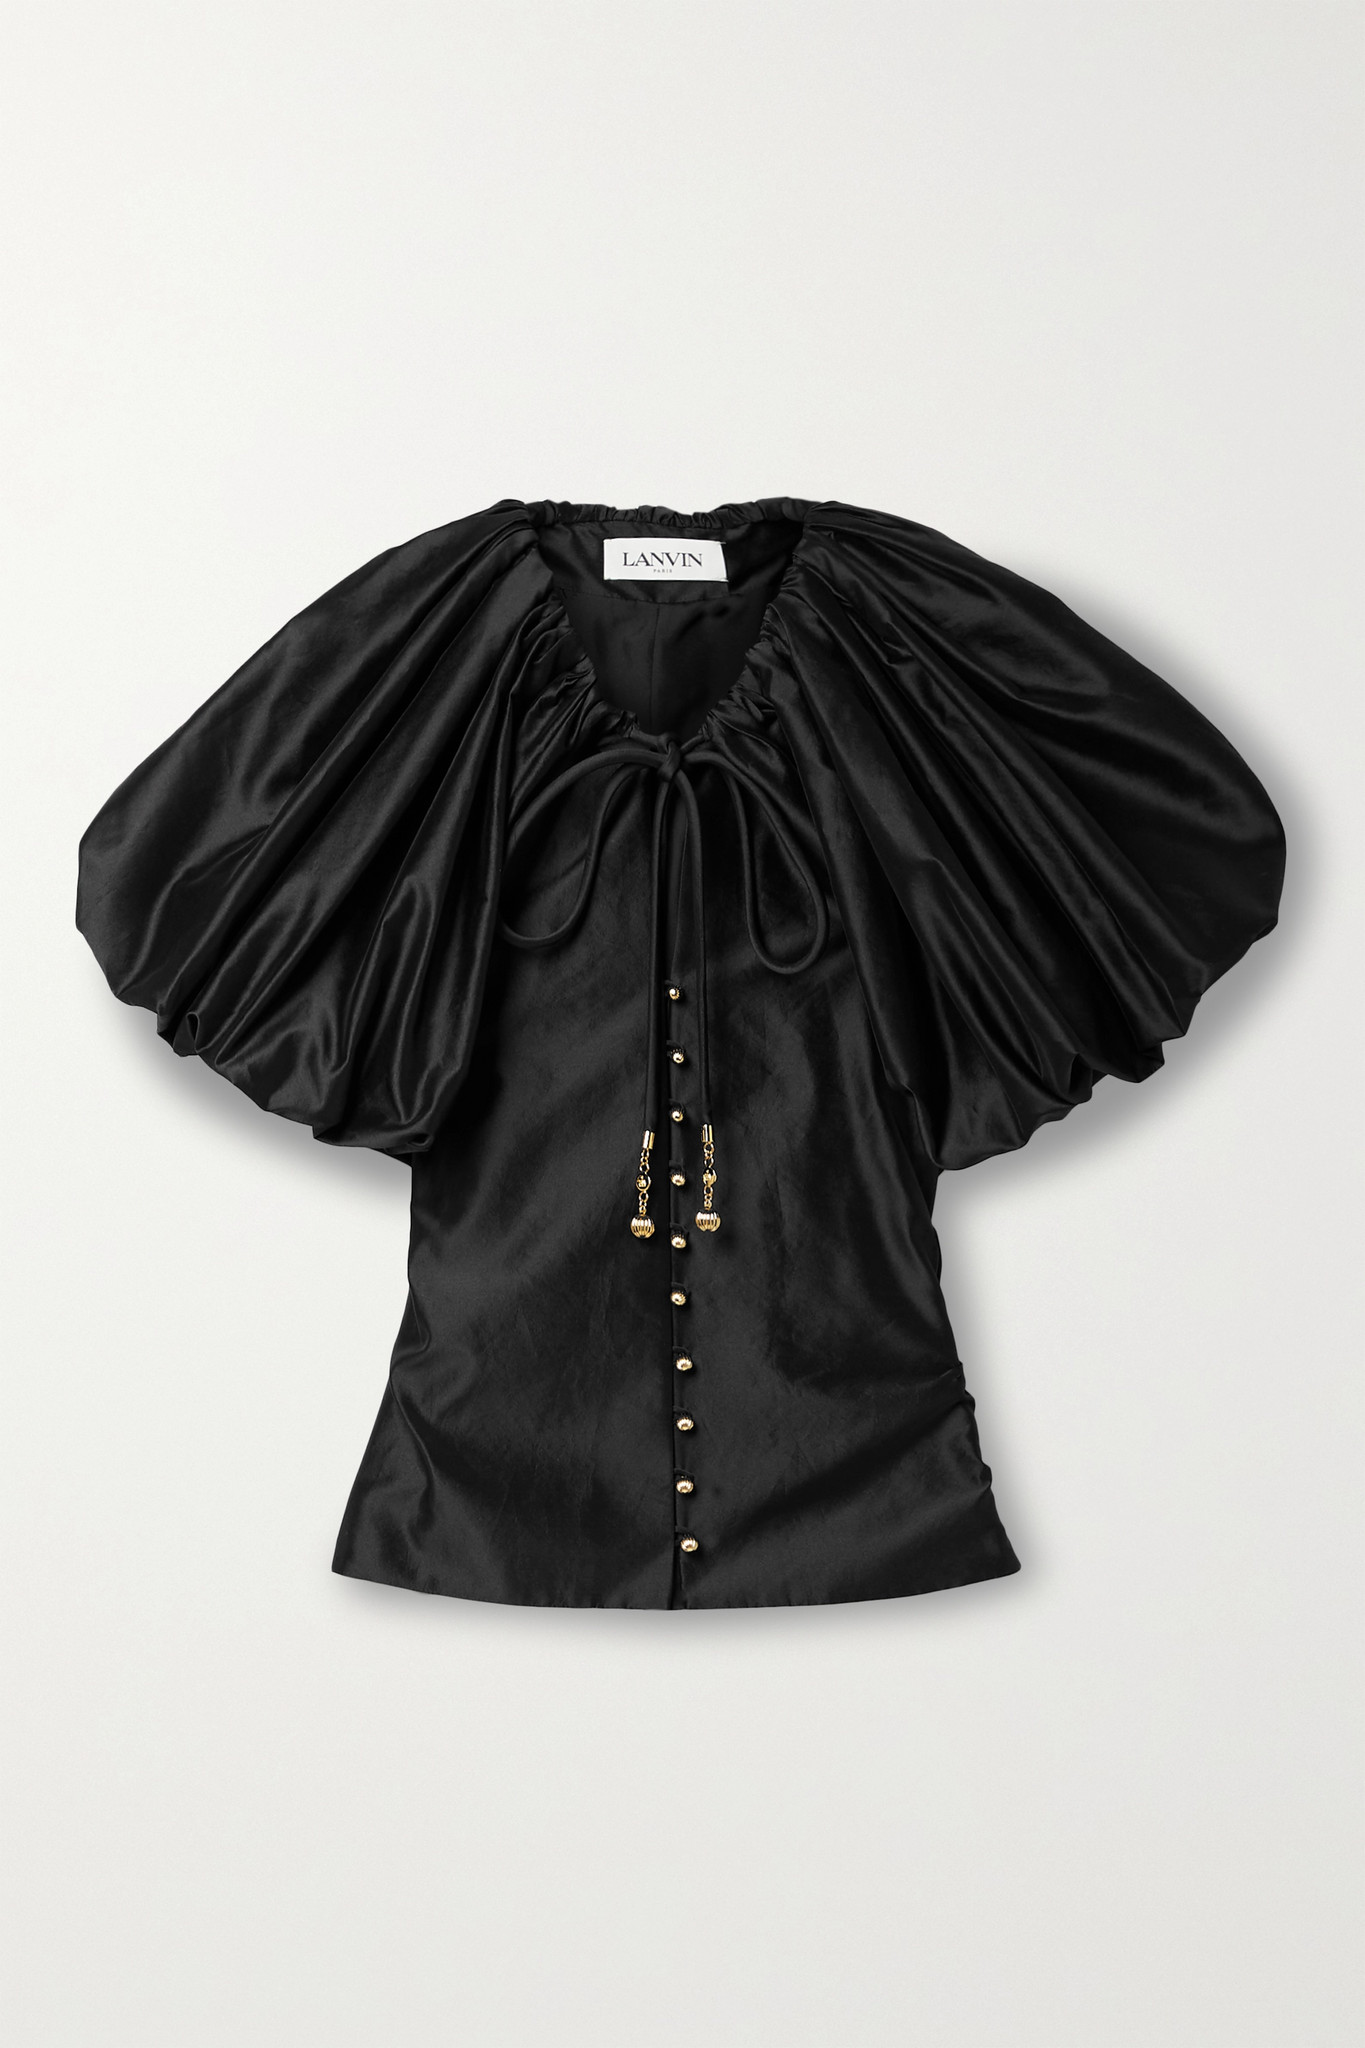 LANVIN - Gathered Taffeta Blouse - Black - FR40